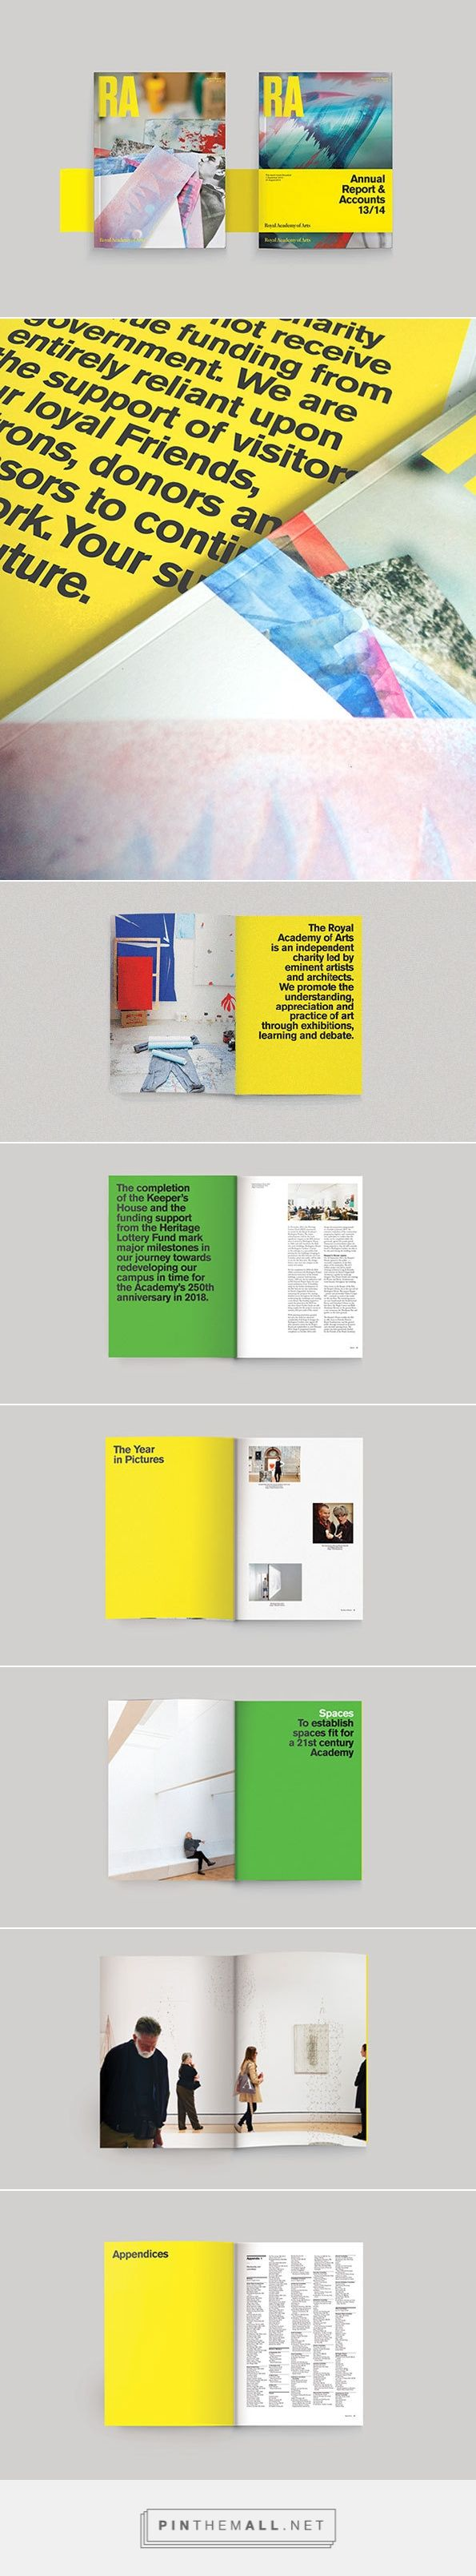 144 best Annual Reports images on Pinterest | Editorial design ...